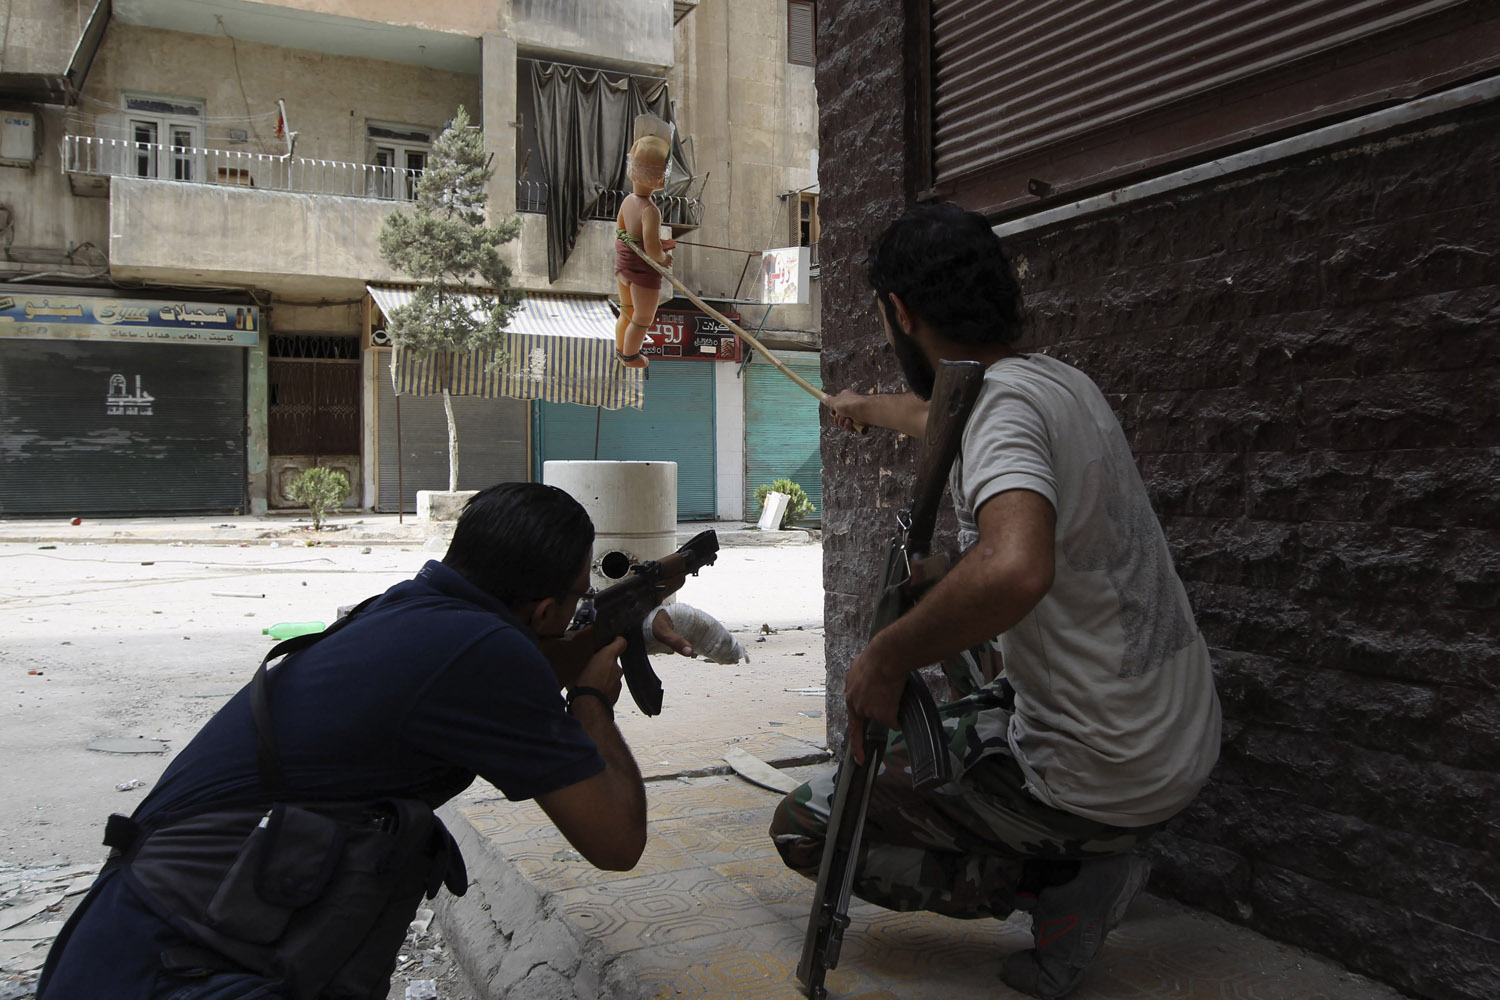 Sept. 18, 2013. A Kurdish Free Syrian Army fighter holds out a doll while his fellow fighter takes shooting position in Ashrafieh, Aleppo, Syria.